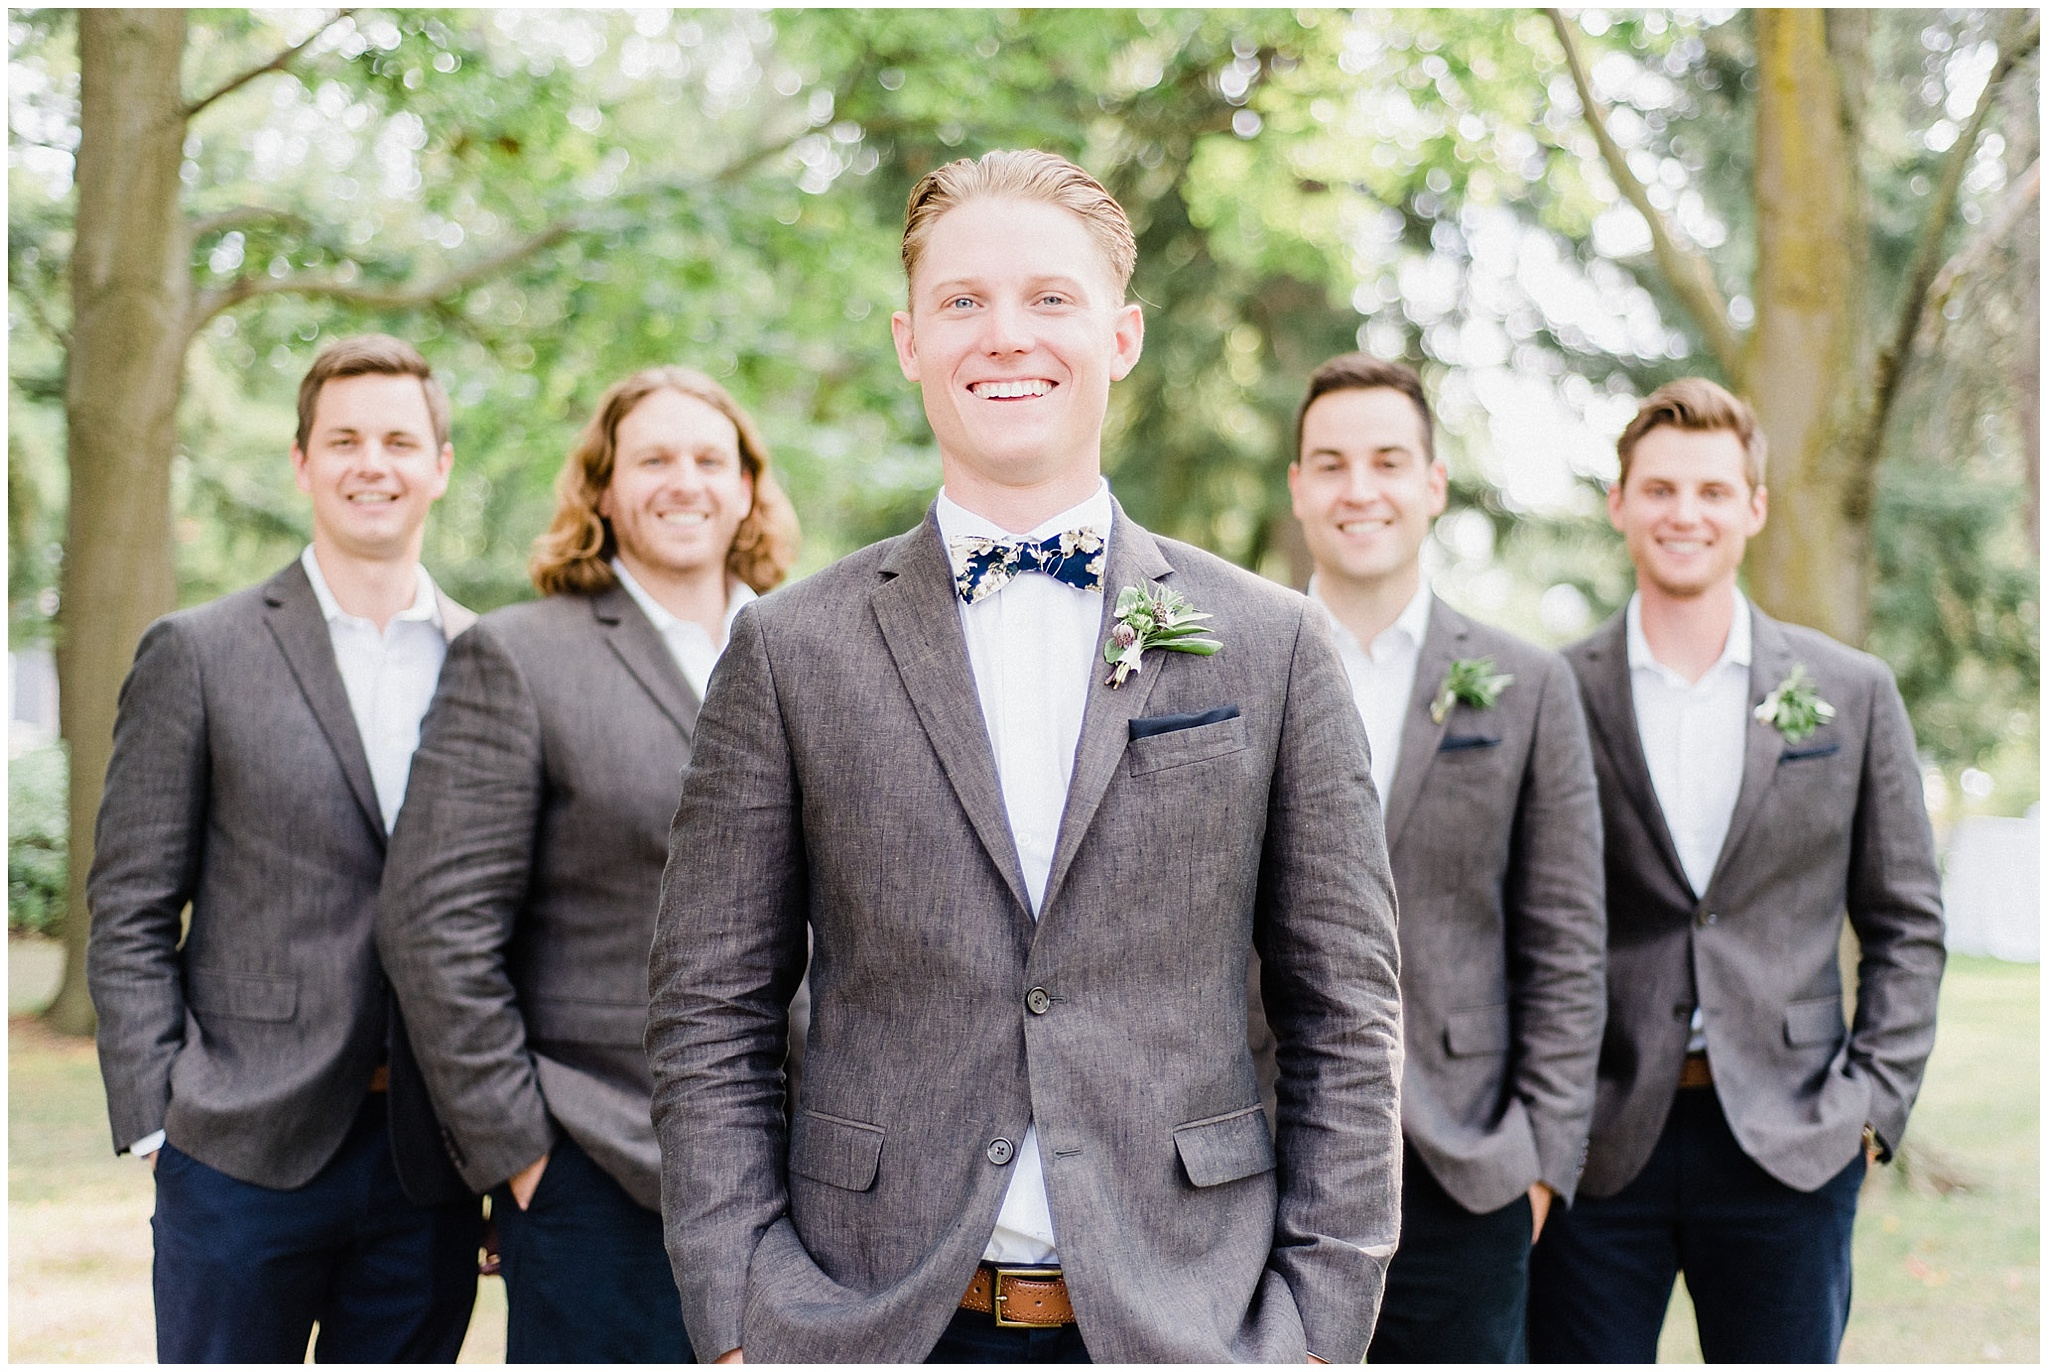 Groomsmen in chinos and blazers | Victoria Park Pavilion photographed by Jenn Kavanagh Photography